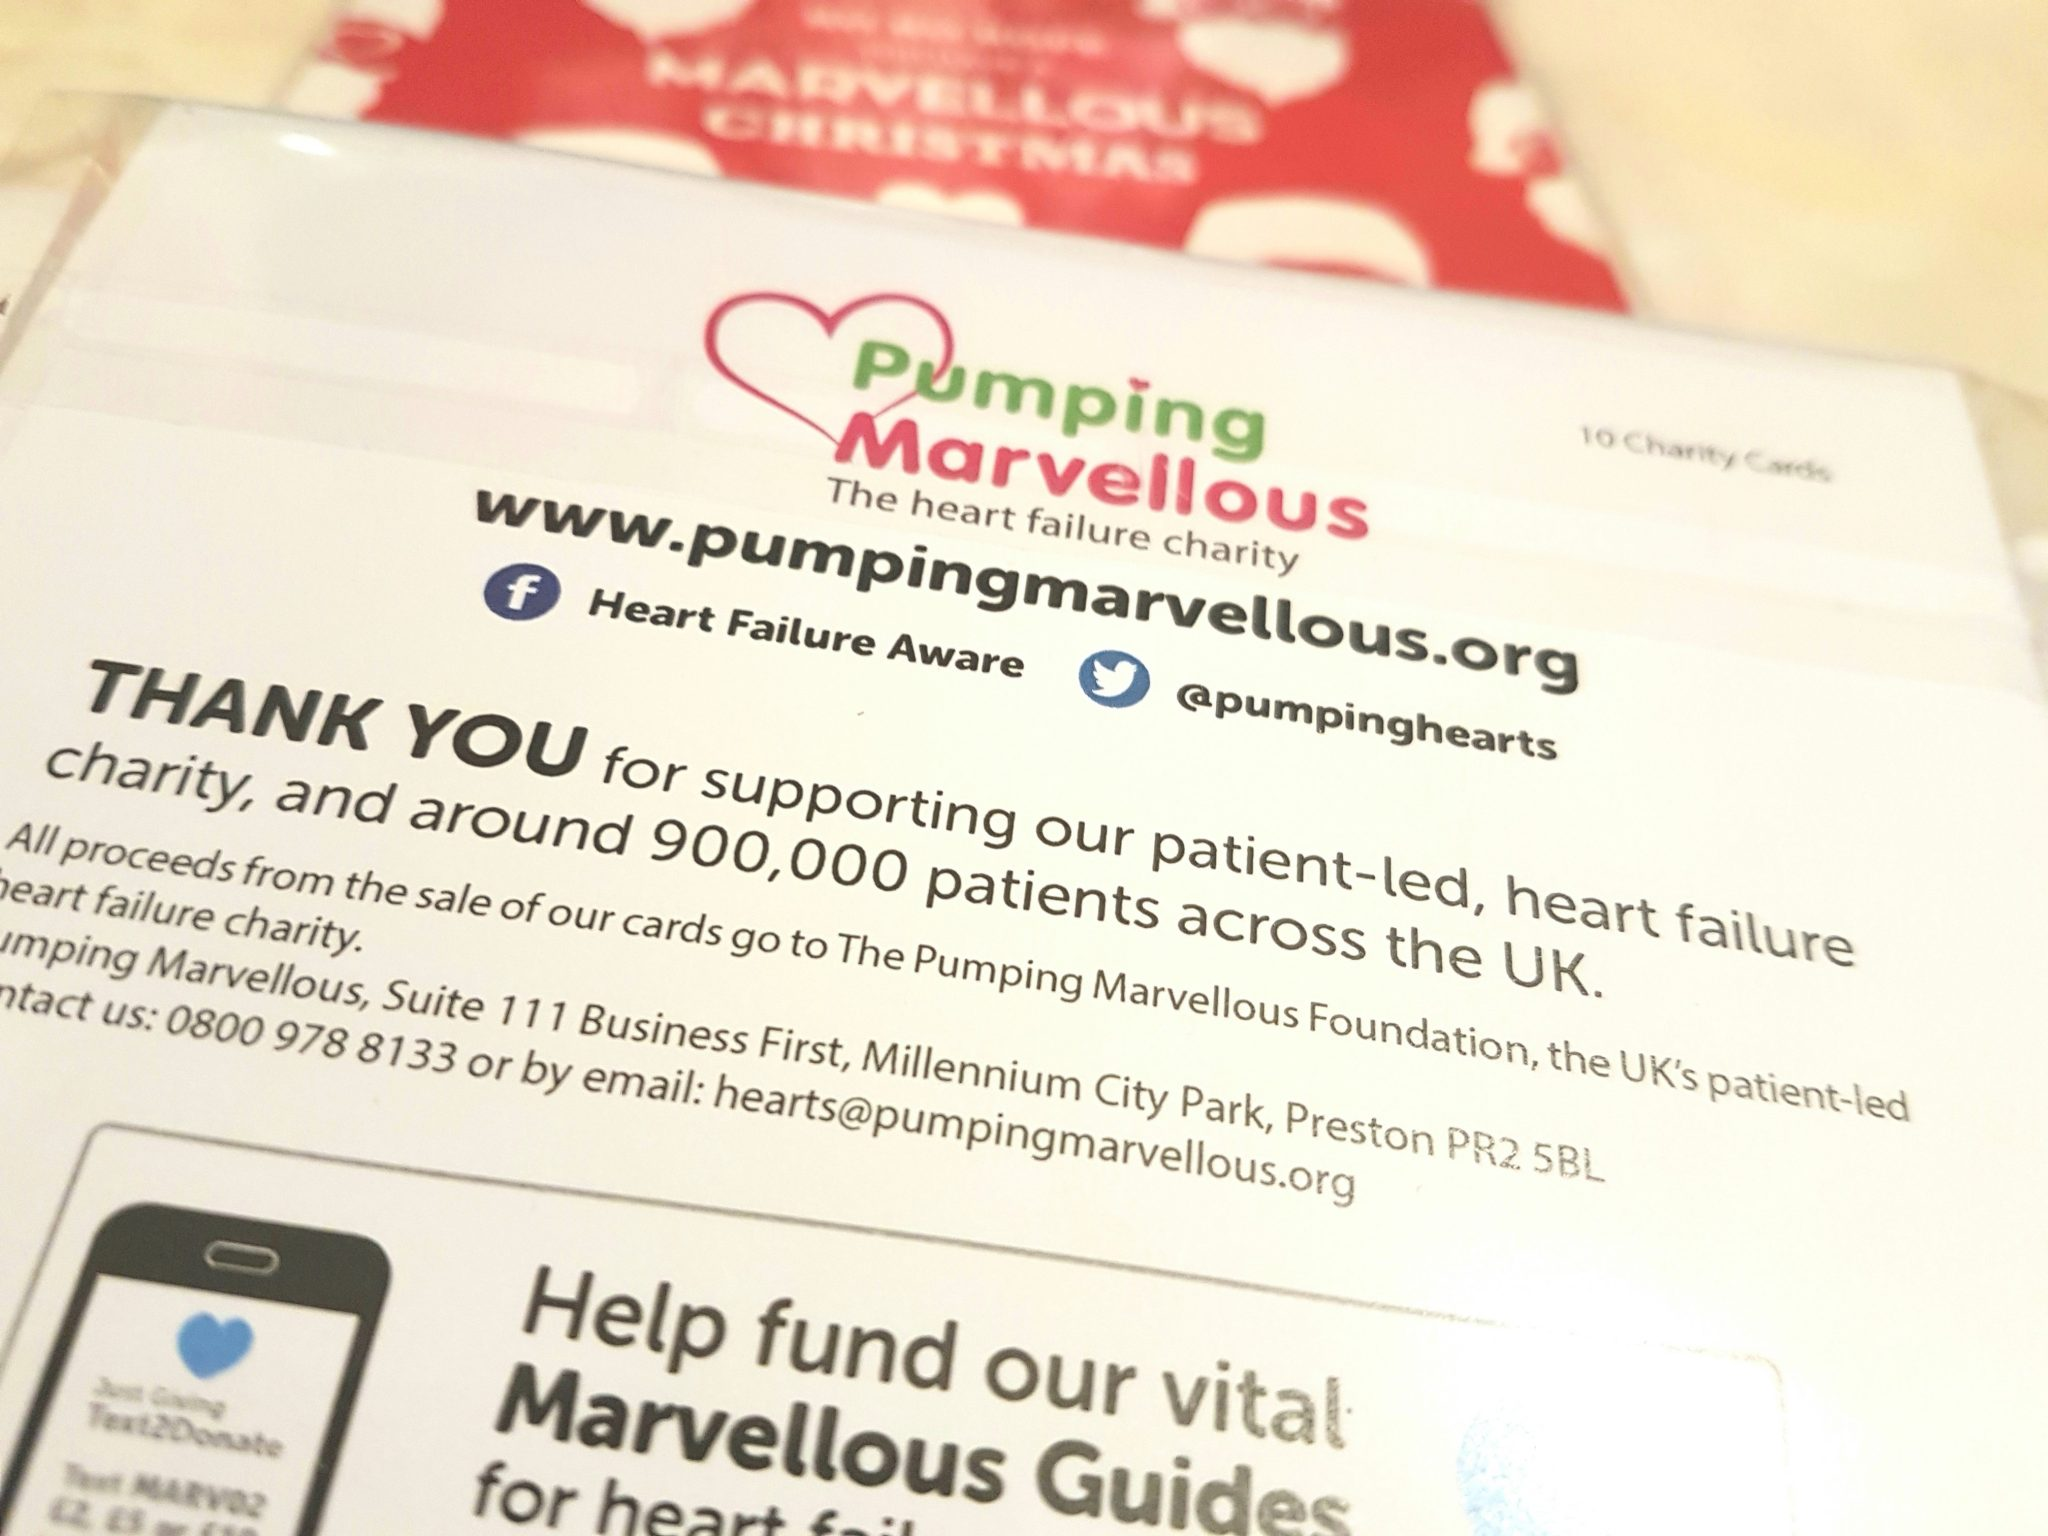 Pumping Marvellous Charity Christmas Cards | Heart Failure - Pumping ...